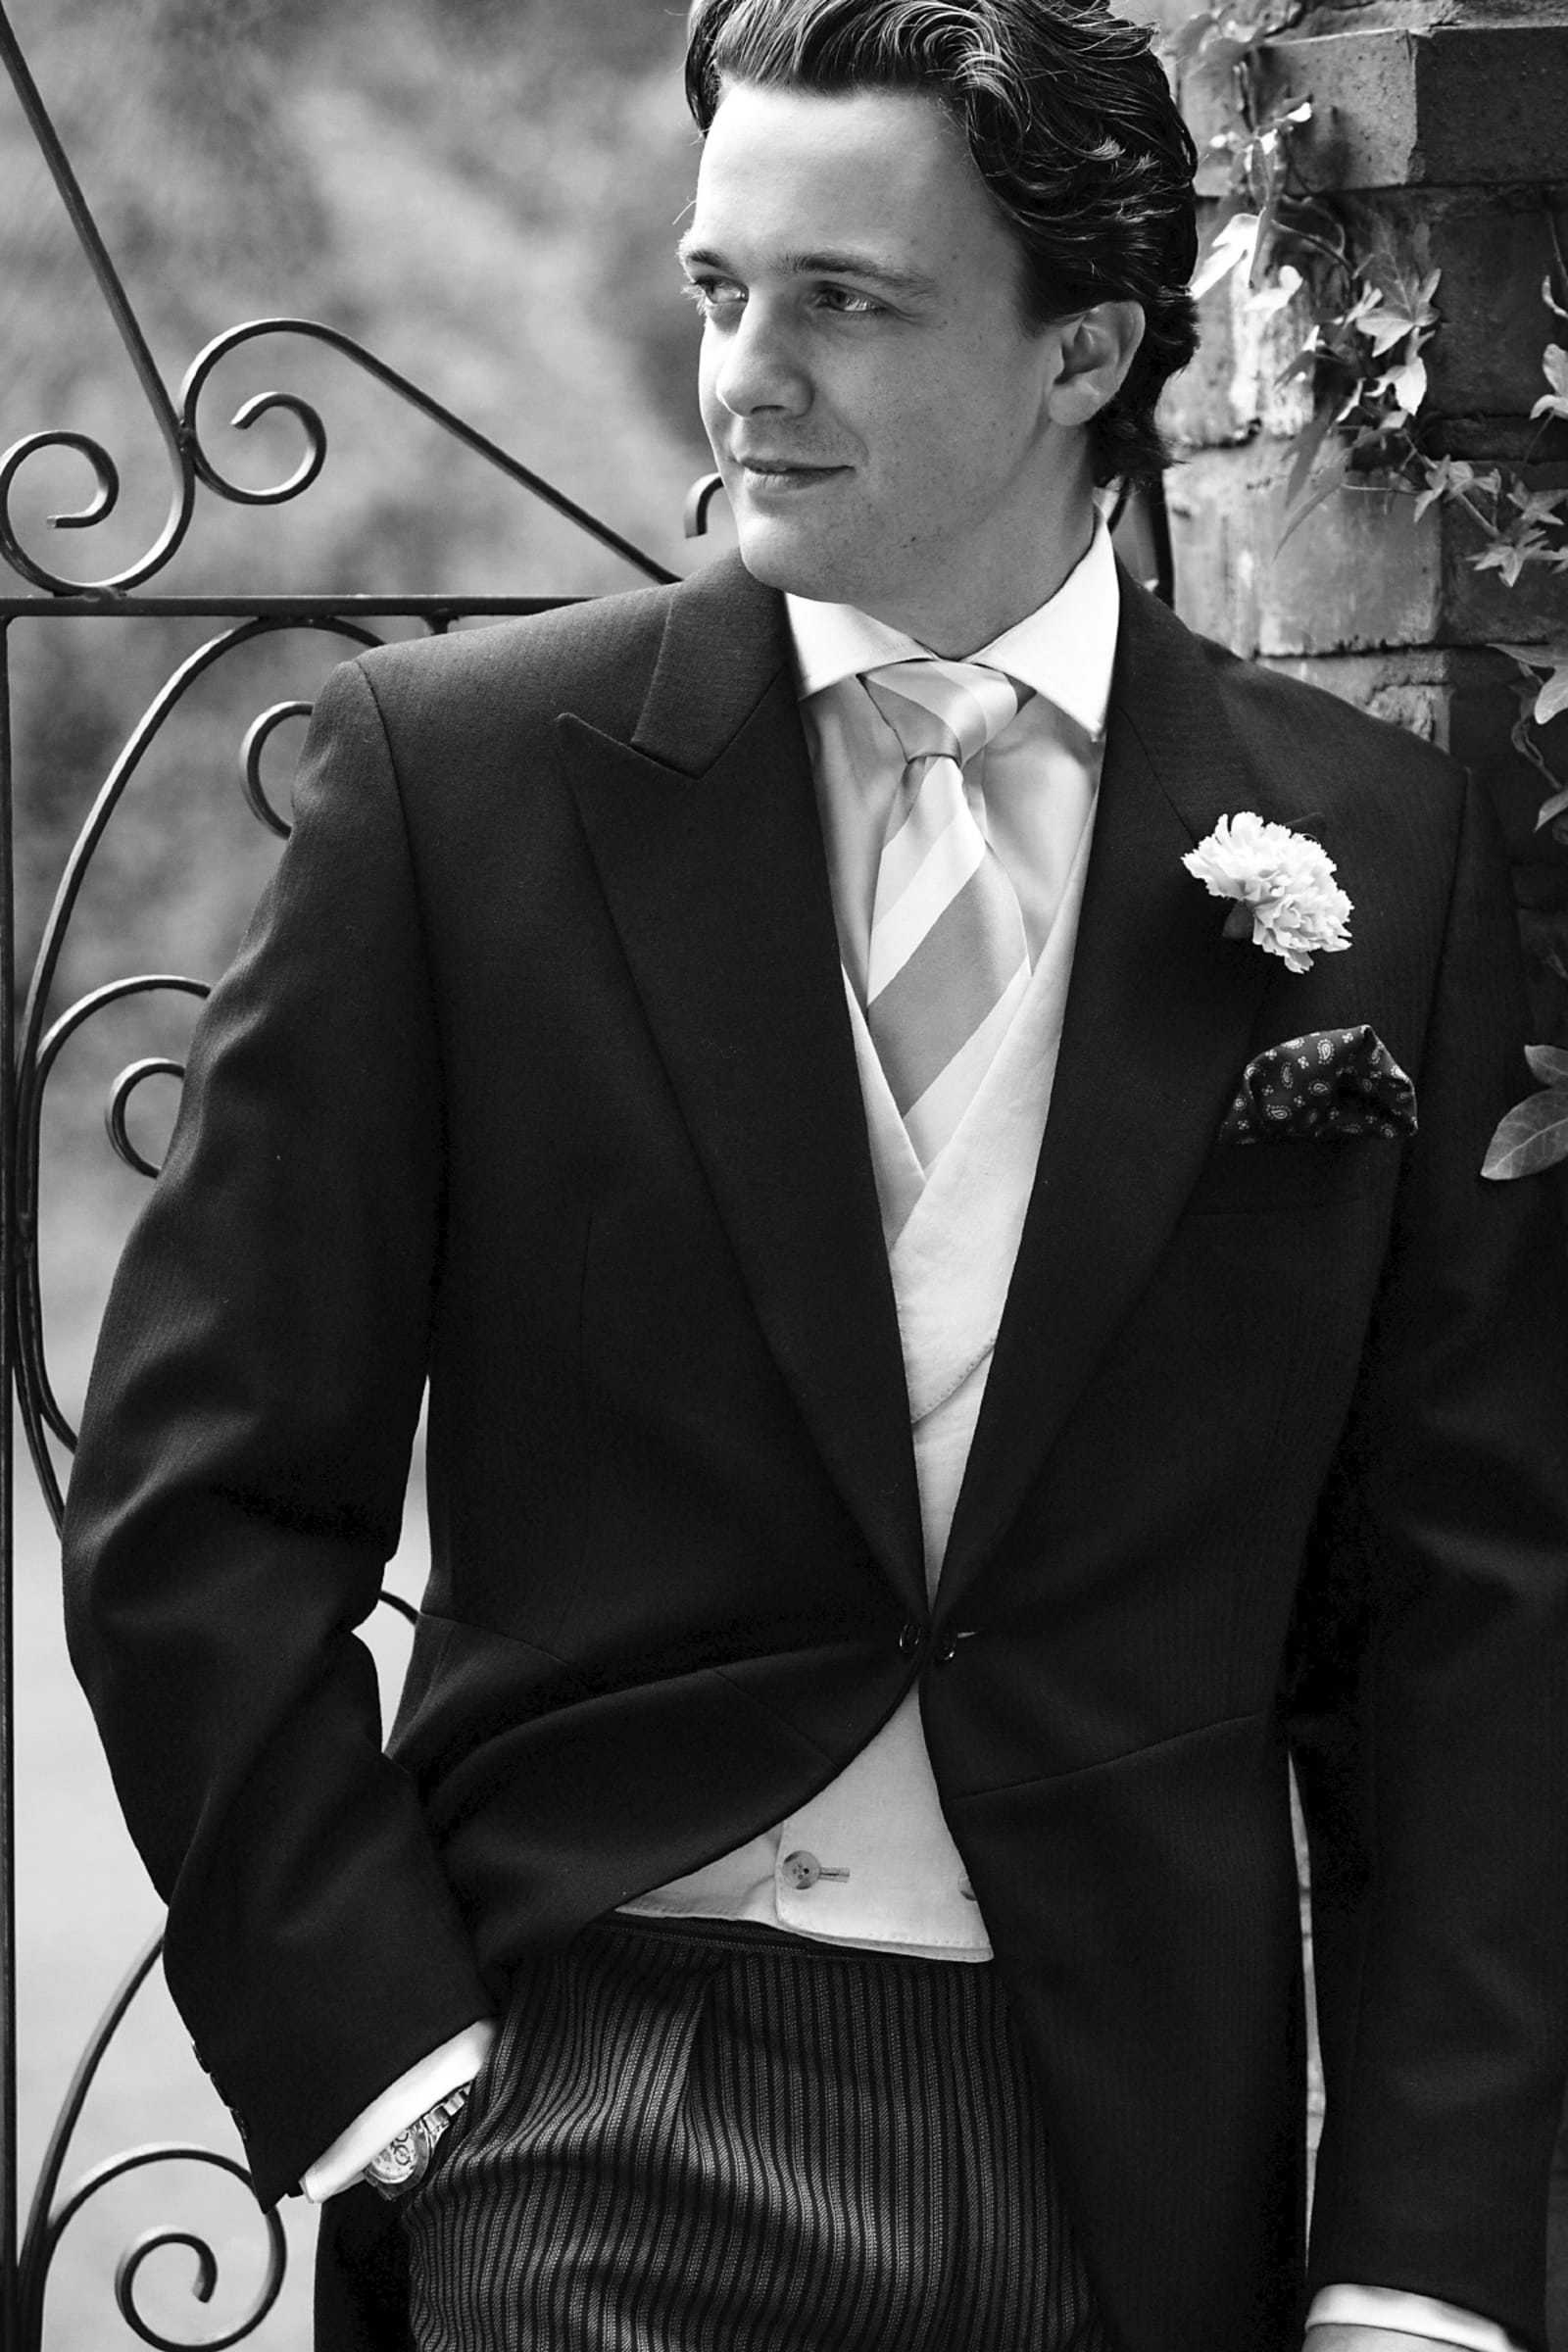 Tailored Luxury Wedding Suits For Men Formal Wear Bespoke Suit Savile Row Tailor, London and Cheshire Phillip Alexander